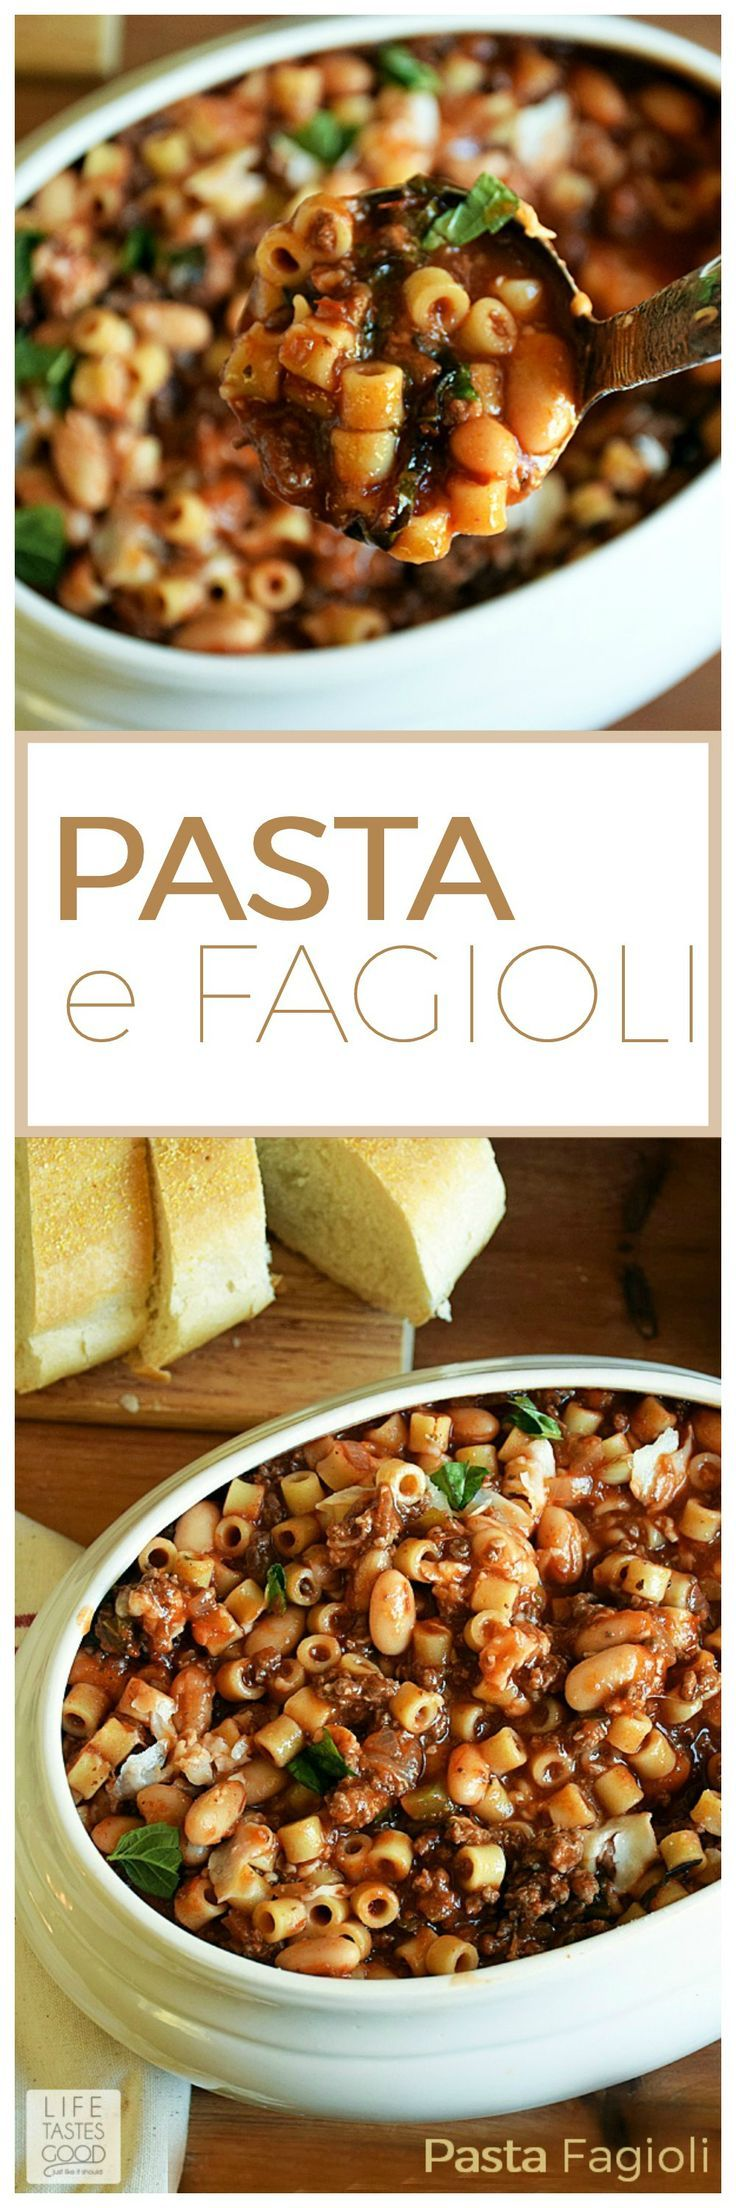 Pasta e Fagioli | by Life Tastes Good is a very hearty and satisfying soup that fills you up and warms you through and through. We enjoy this as an entree with freshly grated Parmesan cheese on top and some crusty french bread for wiping the bowl clean! #SoupRecipes #PastaRecipes #ItalianRecipes